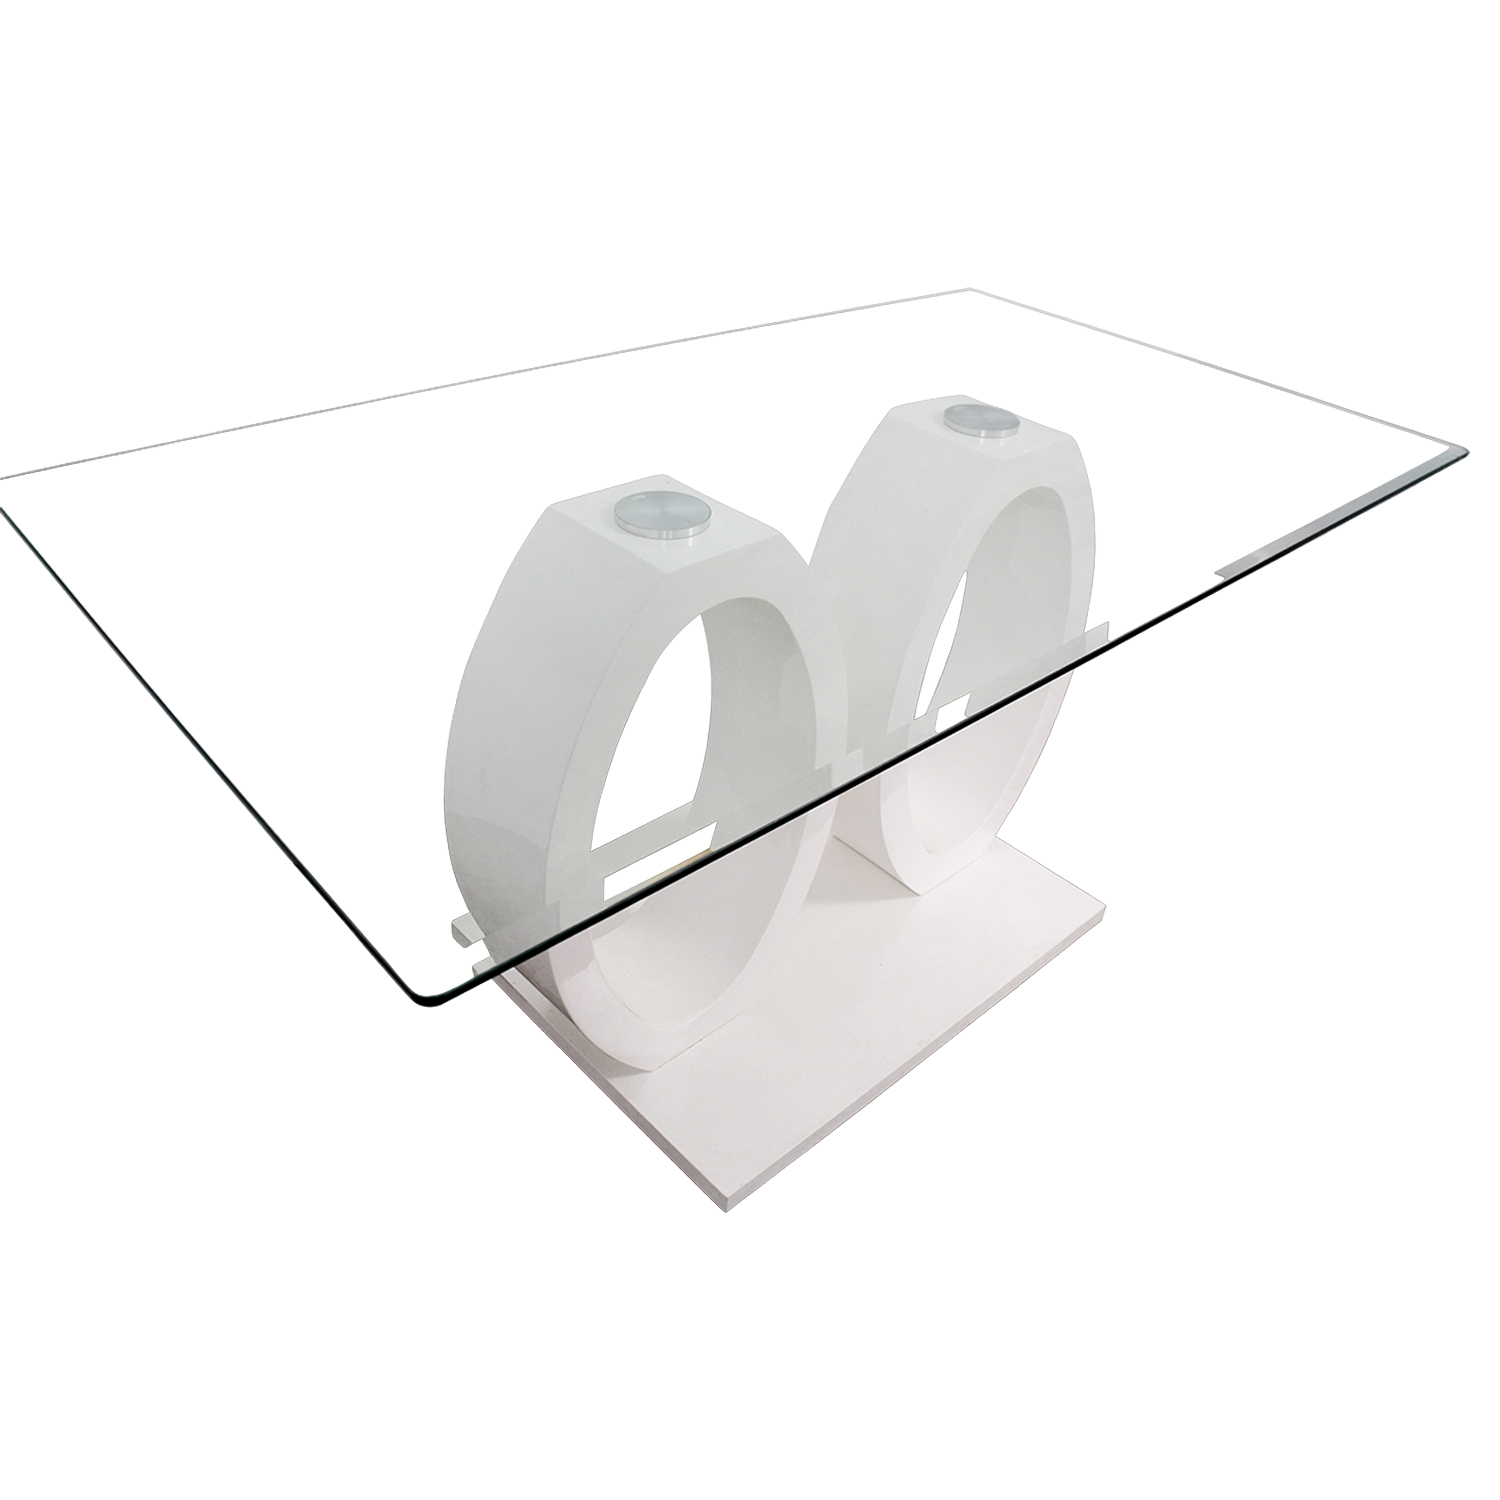 White Oval Rings and Rectangular Glass Contemporary Table used